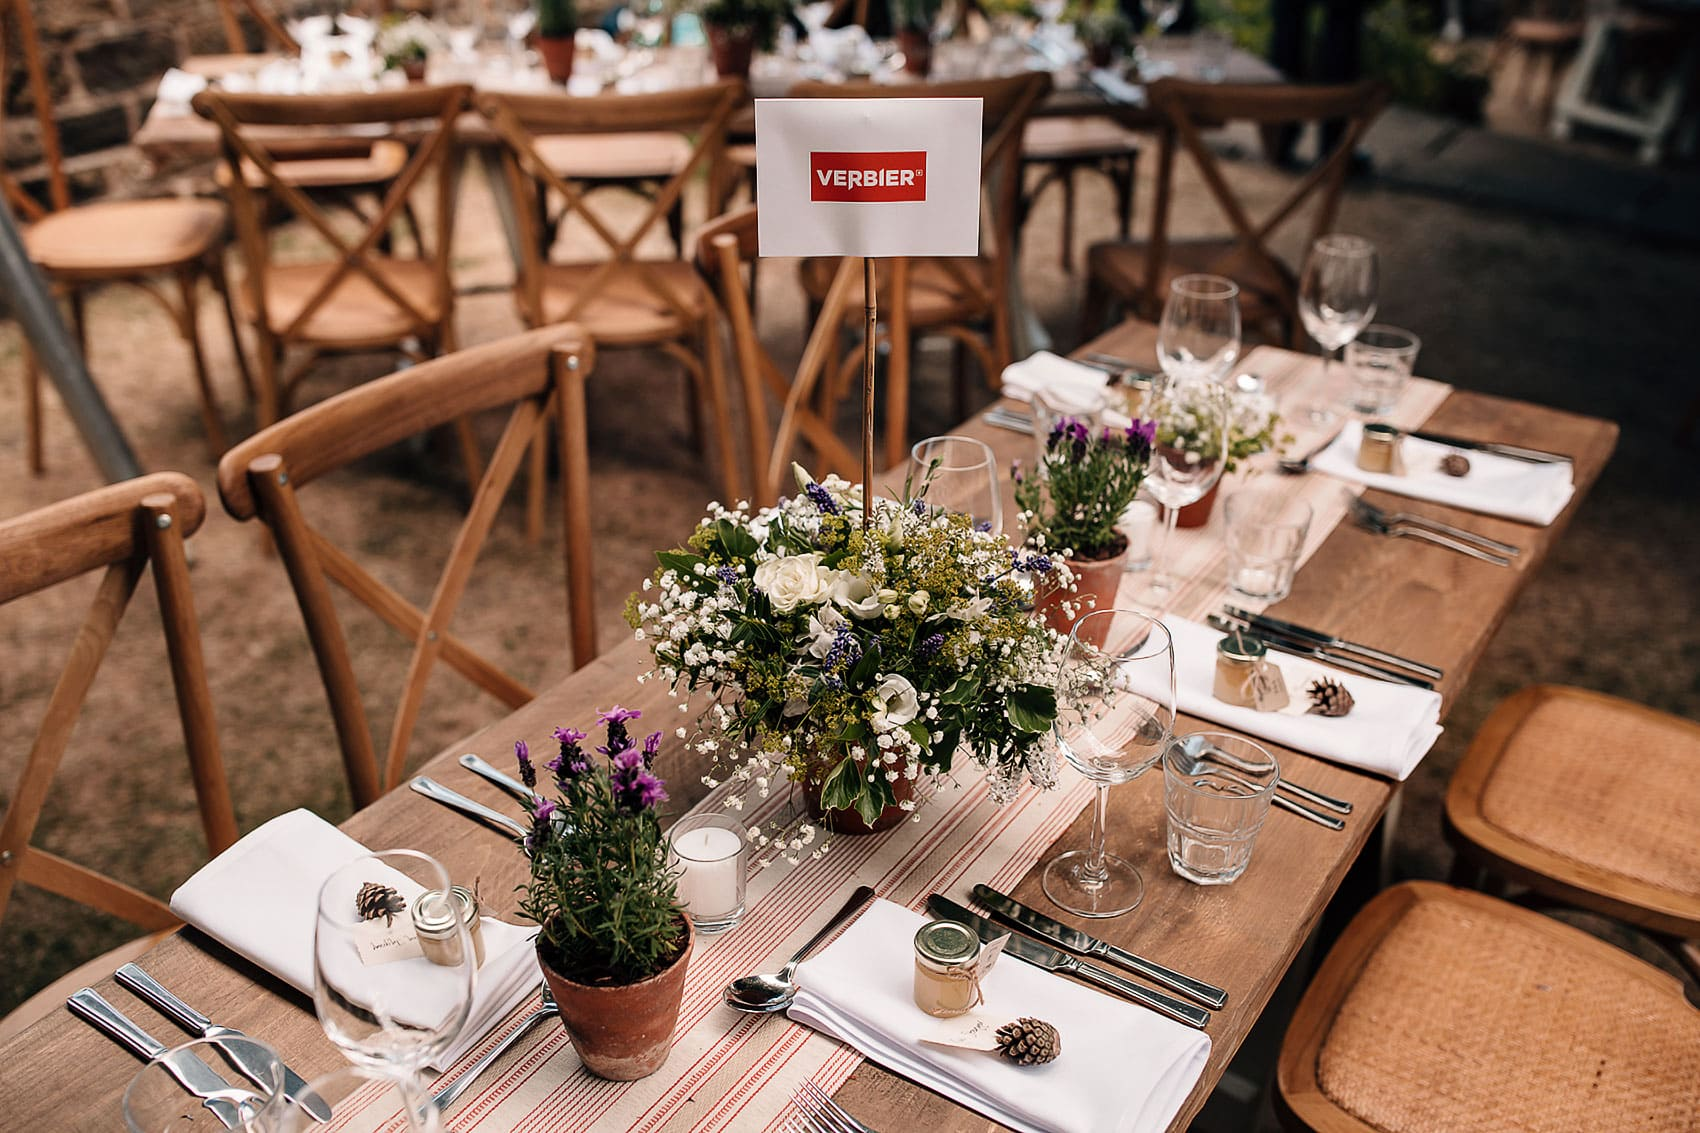 marquee wedding decor rustic wooden tables